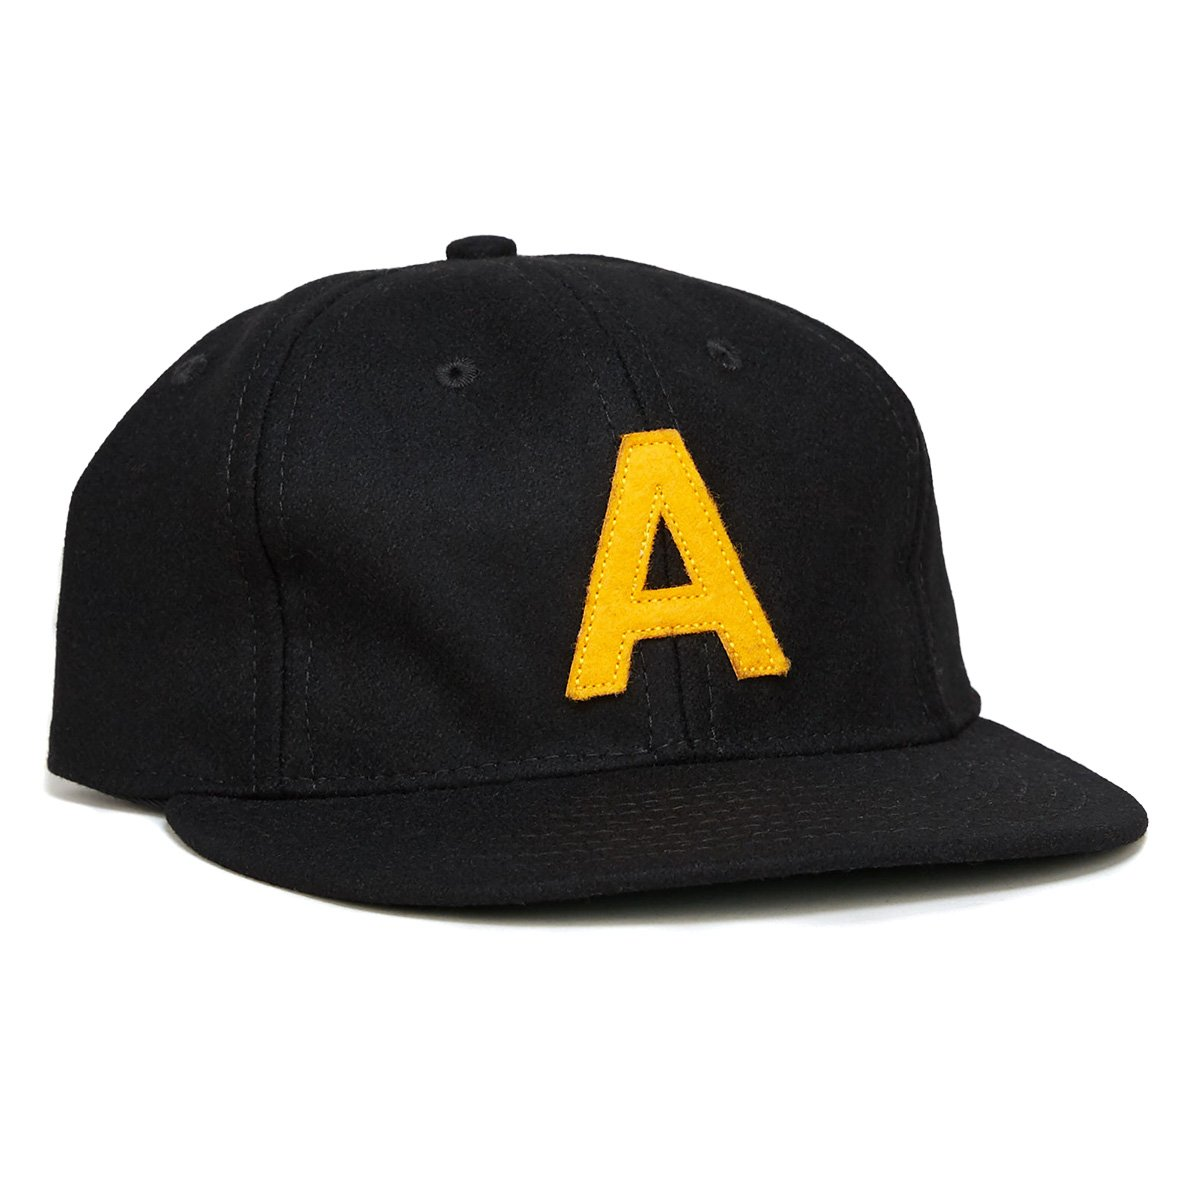 Army 1957 Vintage Ballcap Hats for men, Army, Army hat